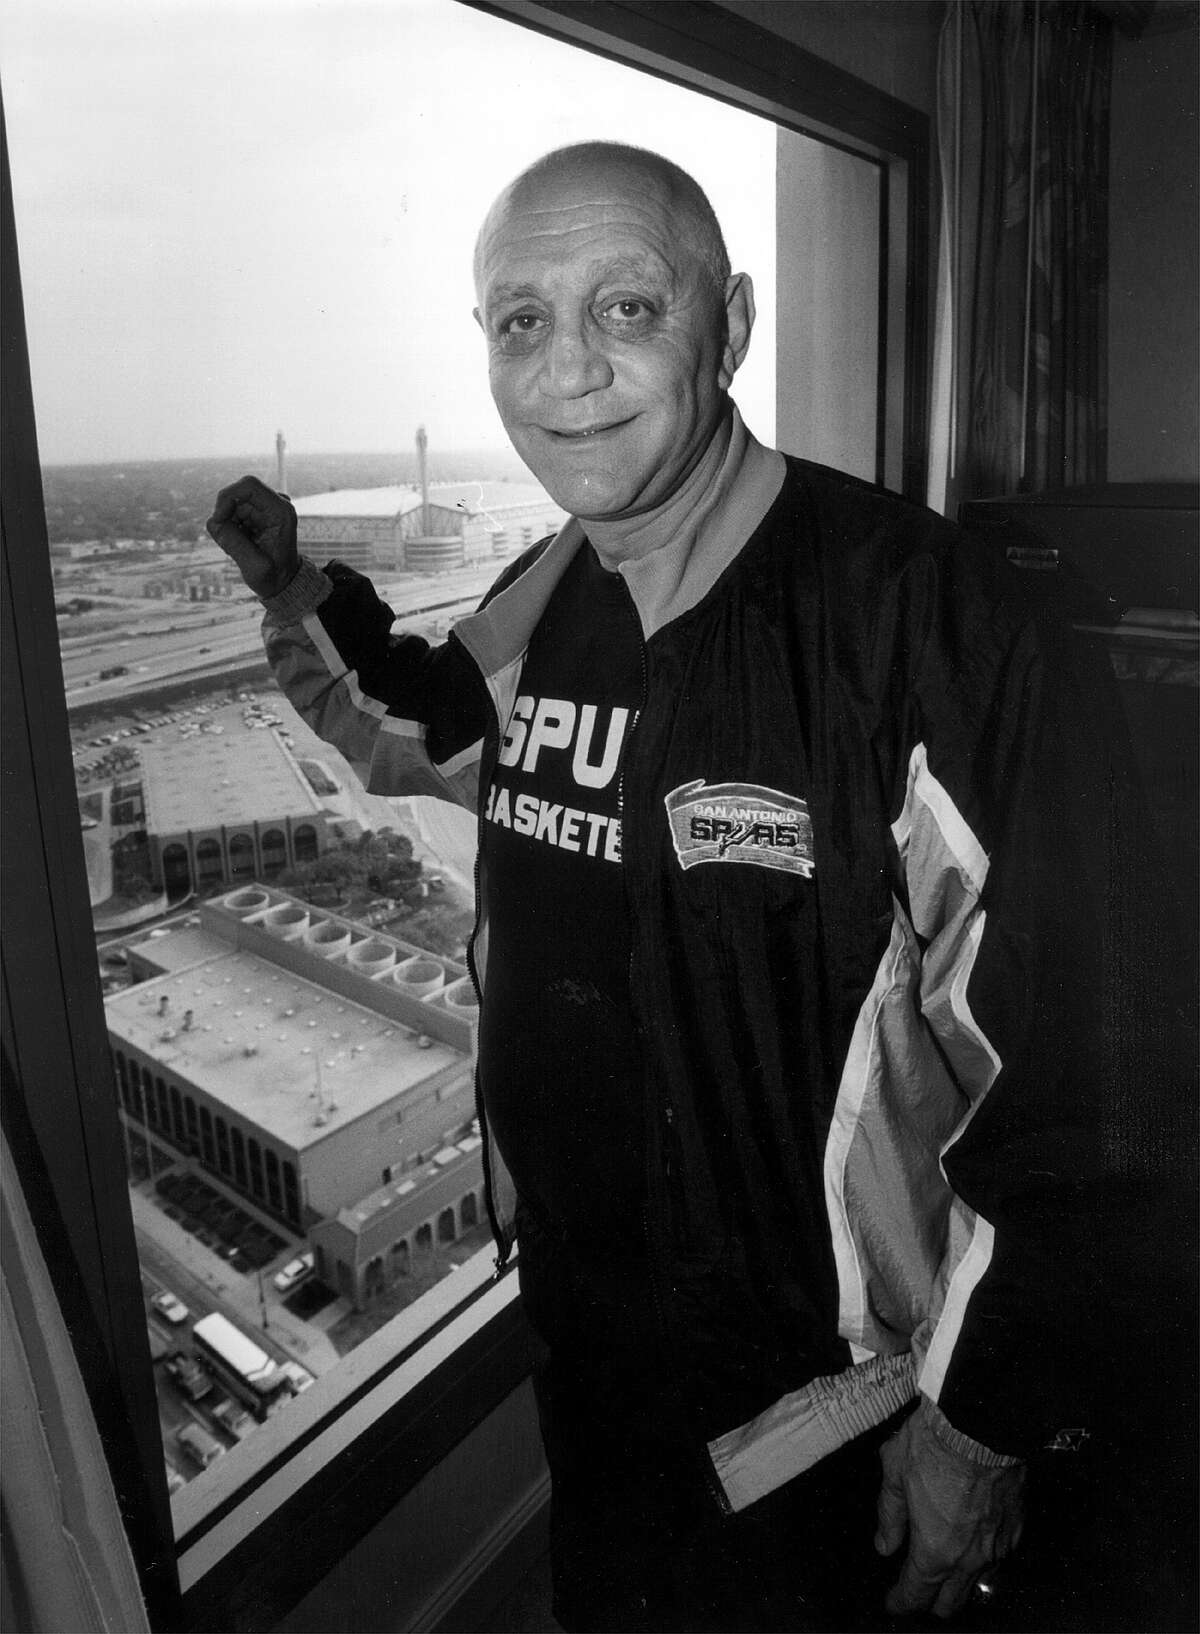 Former Spurs coach Jerry Tarkanian lived in a hotel room overlooking the Alamodome in 1992, but was fired before he could coach in the team's new home. EXPRESS-NEWS FILE PHOTO